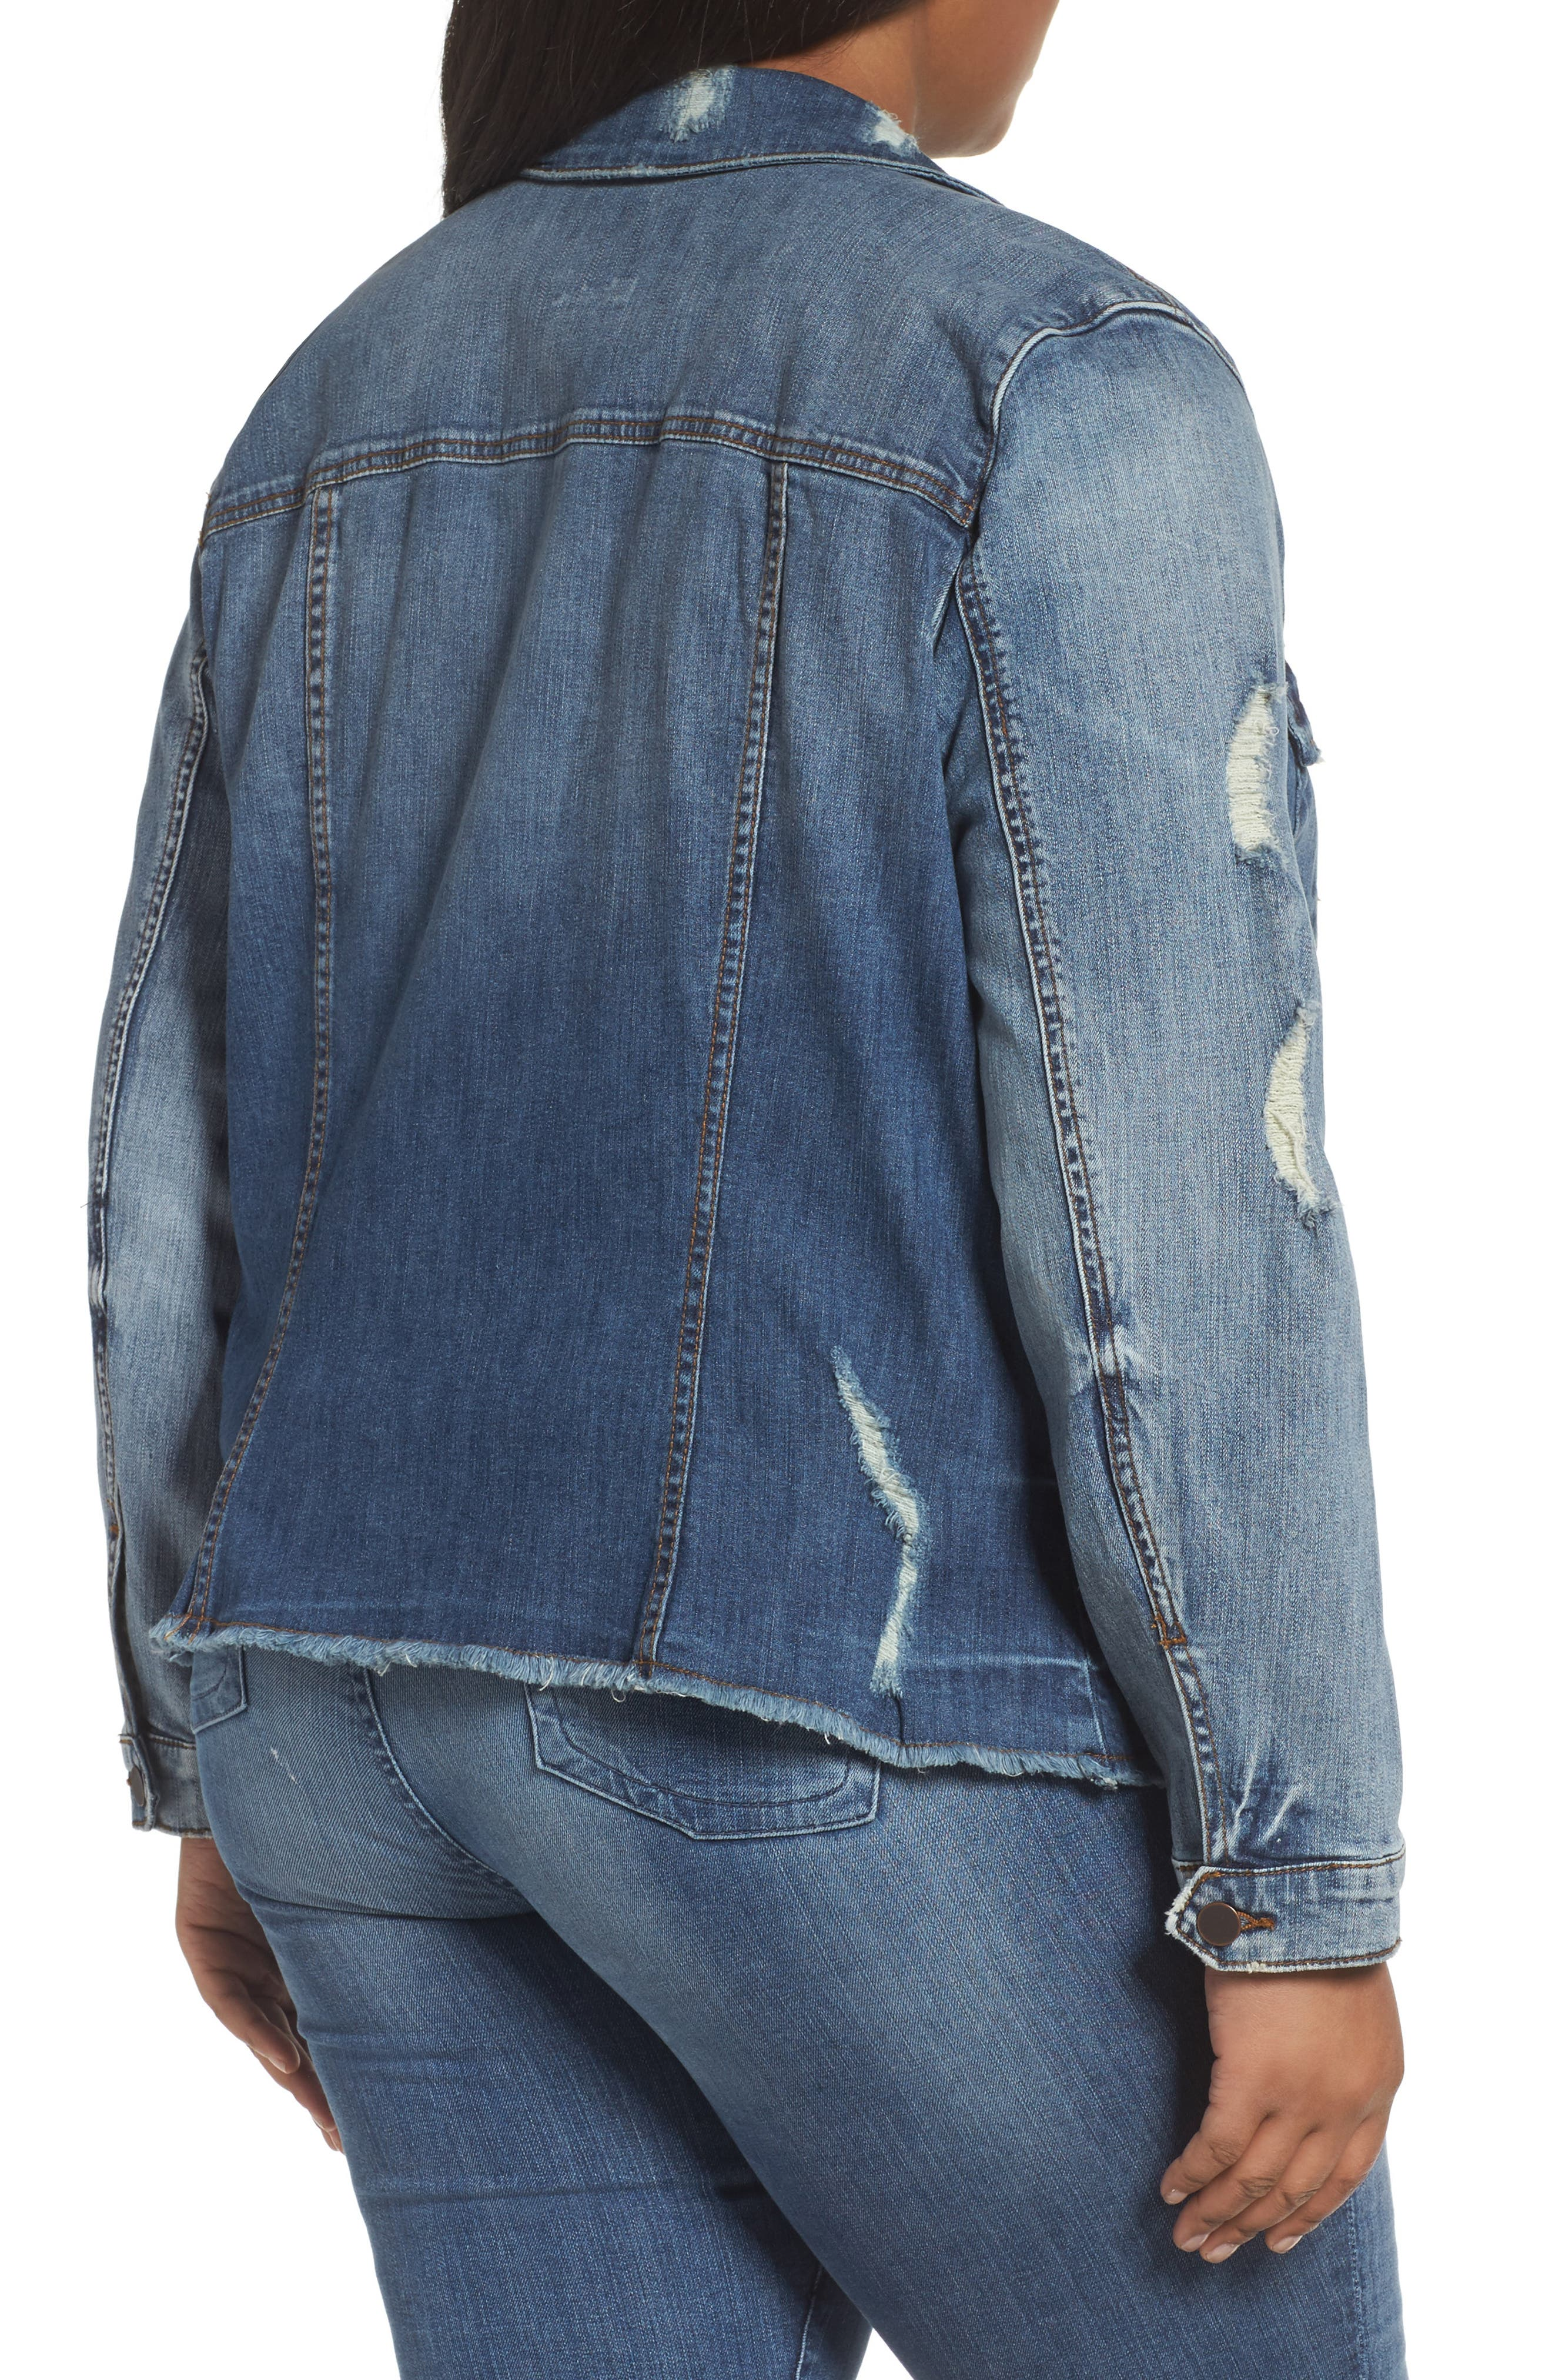 Distressed Denim Jacket,                             Alternate thumbnail 2, color,                             Astral